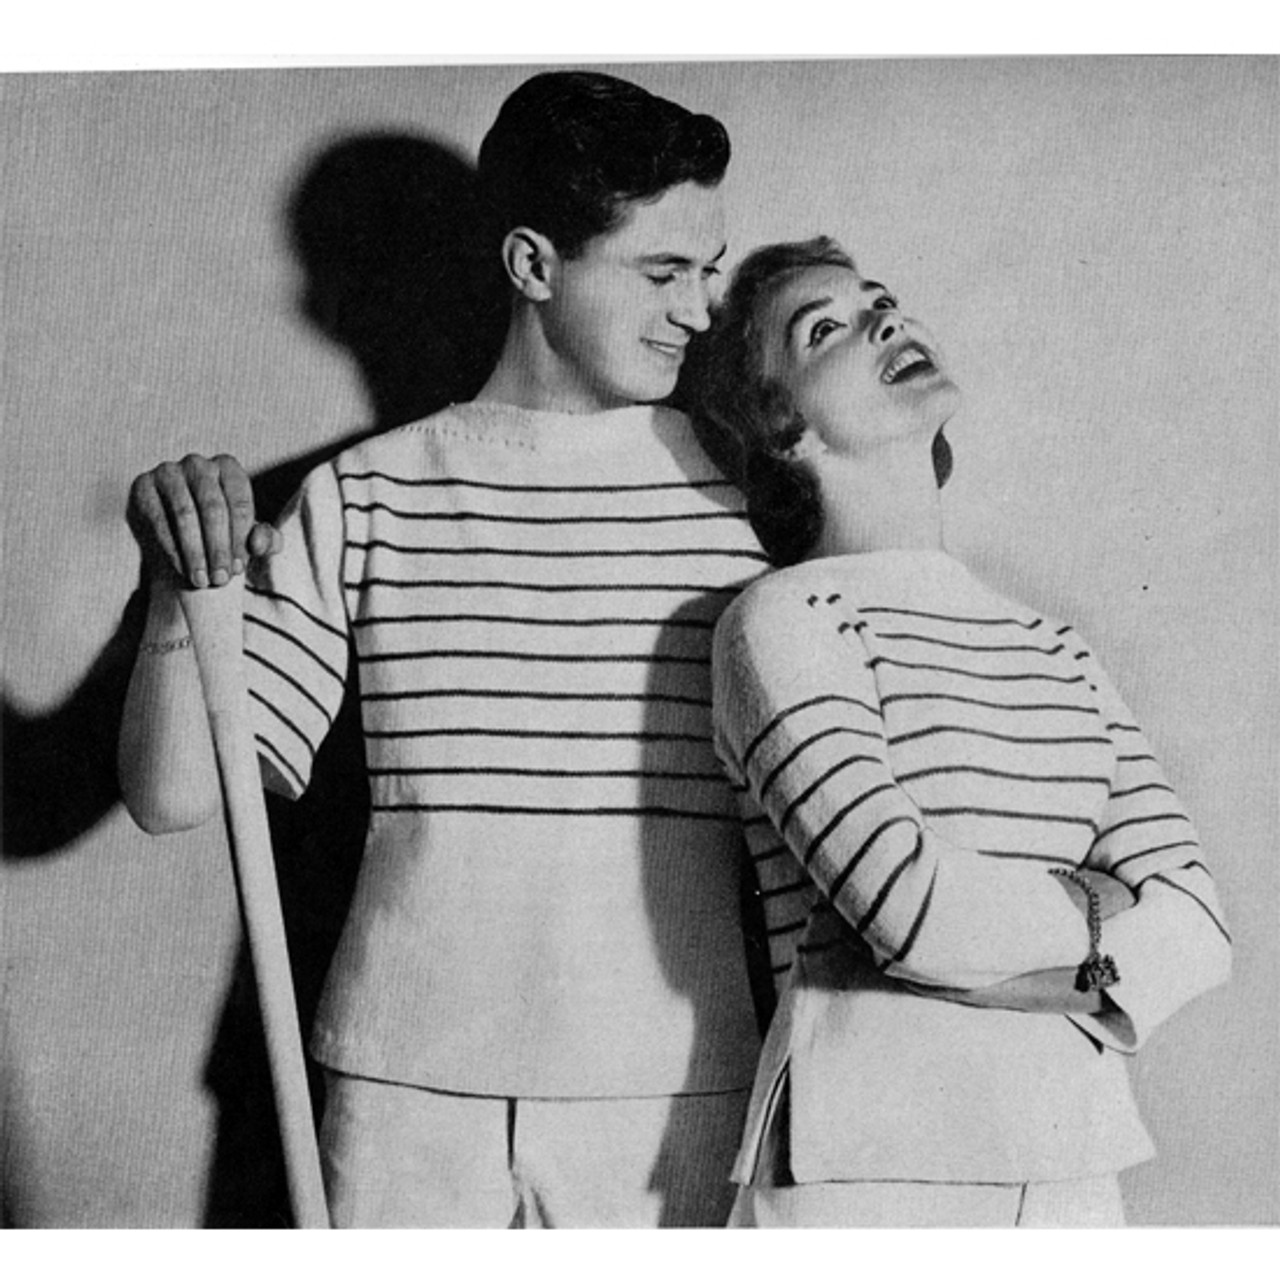 His Hers Knitted Stripped Pullovers Pattern